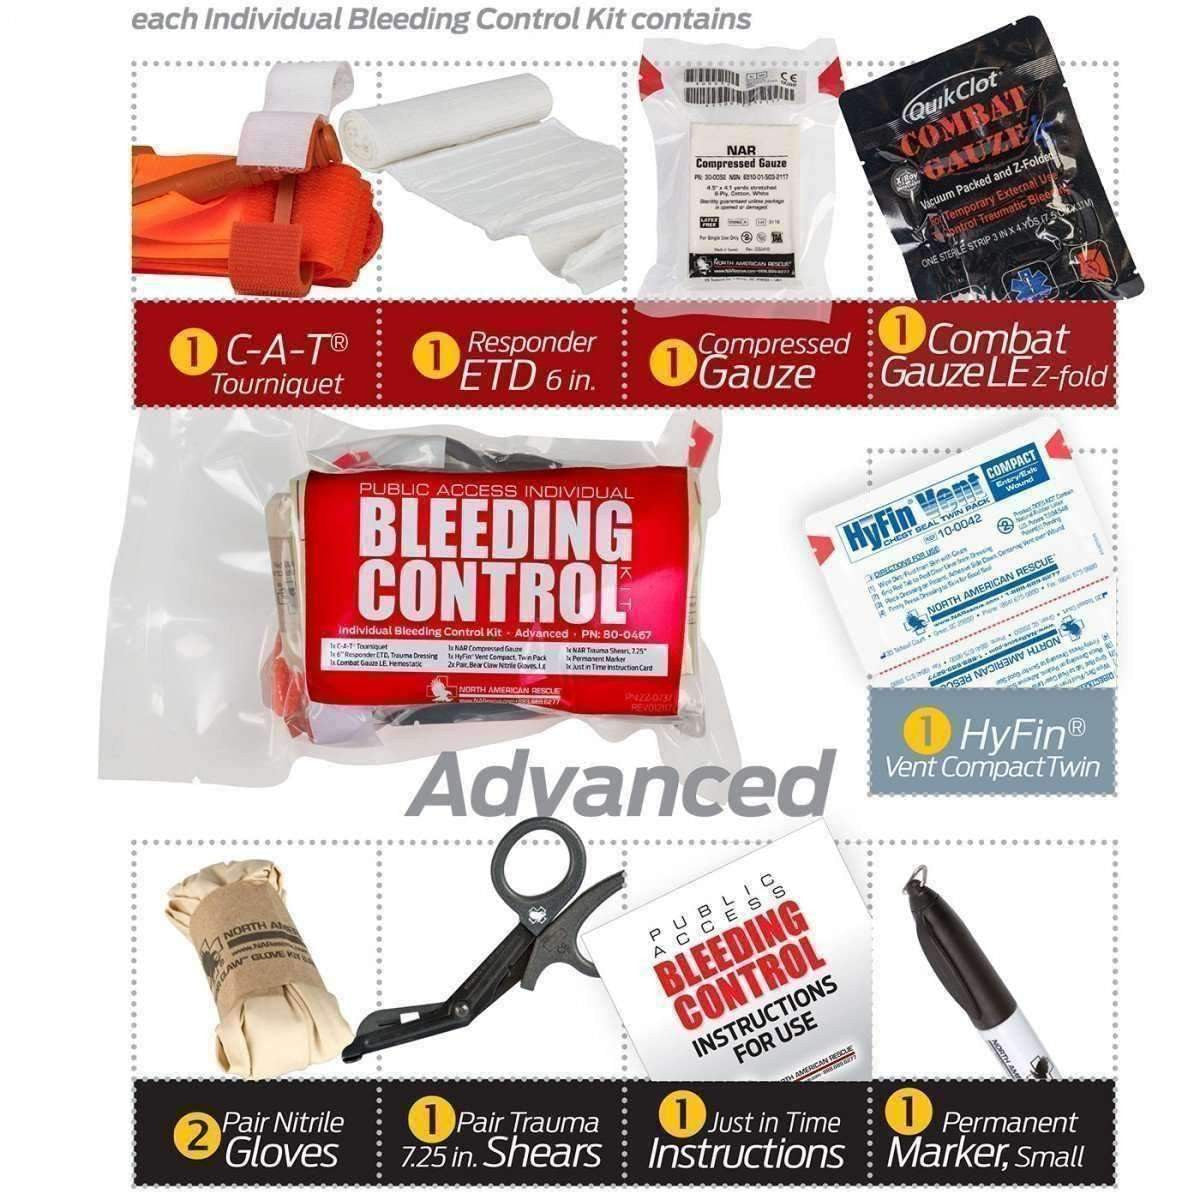 North American Rescue,Public Access Bleeding Control 8 Pack - Vacuum Sealed,medic-packs.